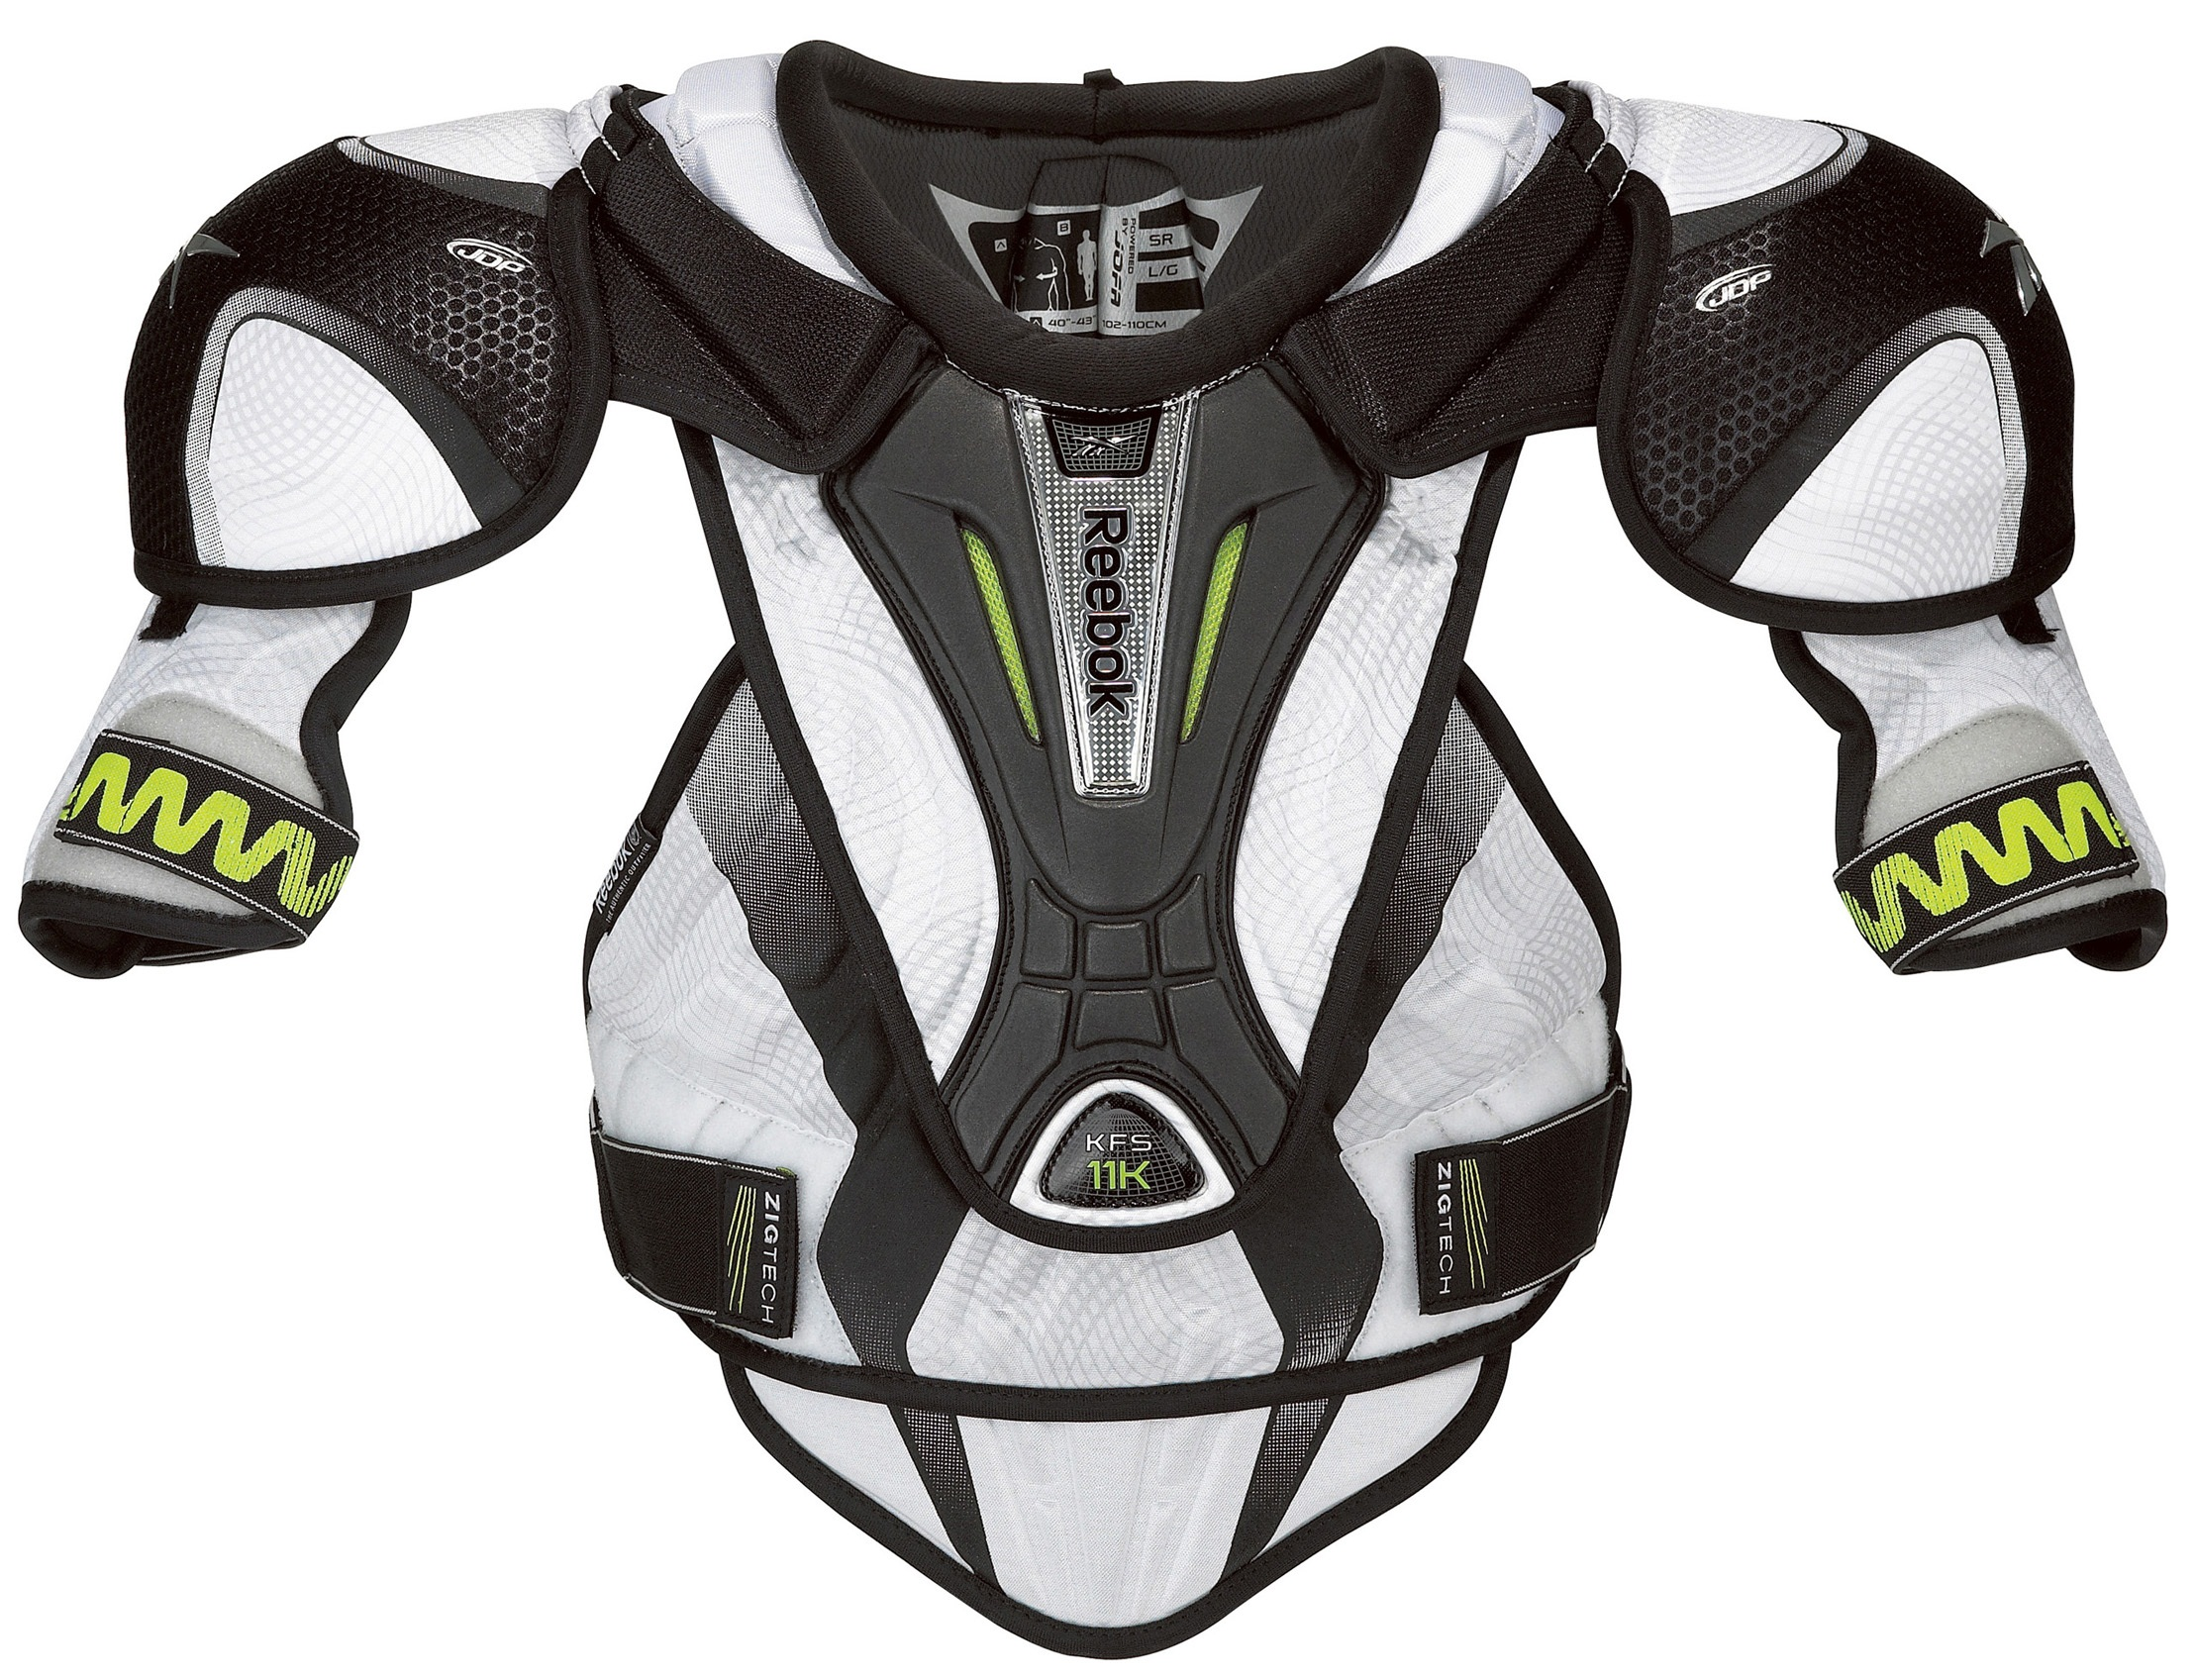 RBK 11K Shoulder Pads